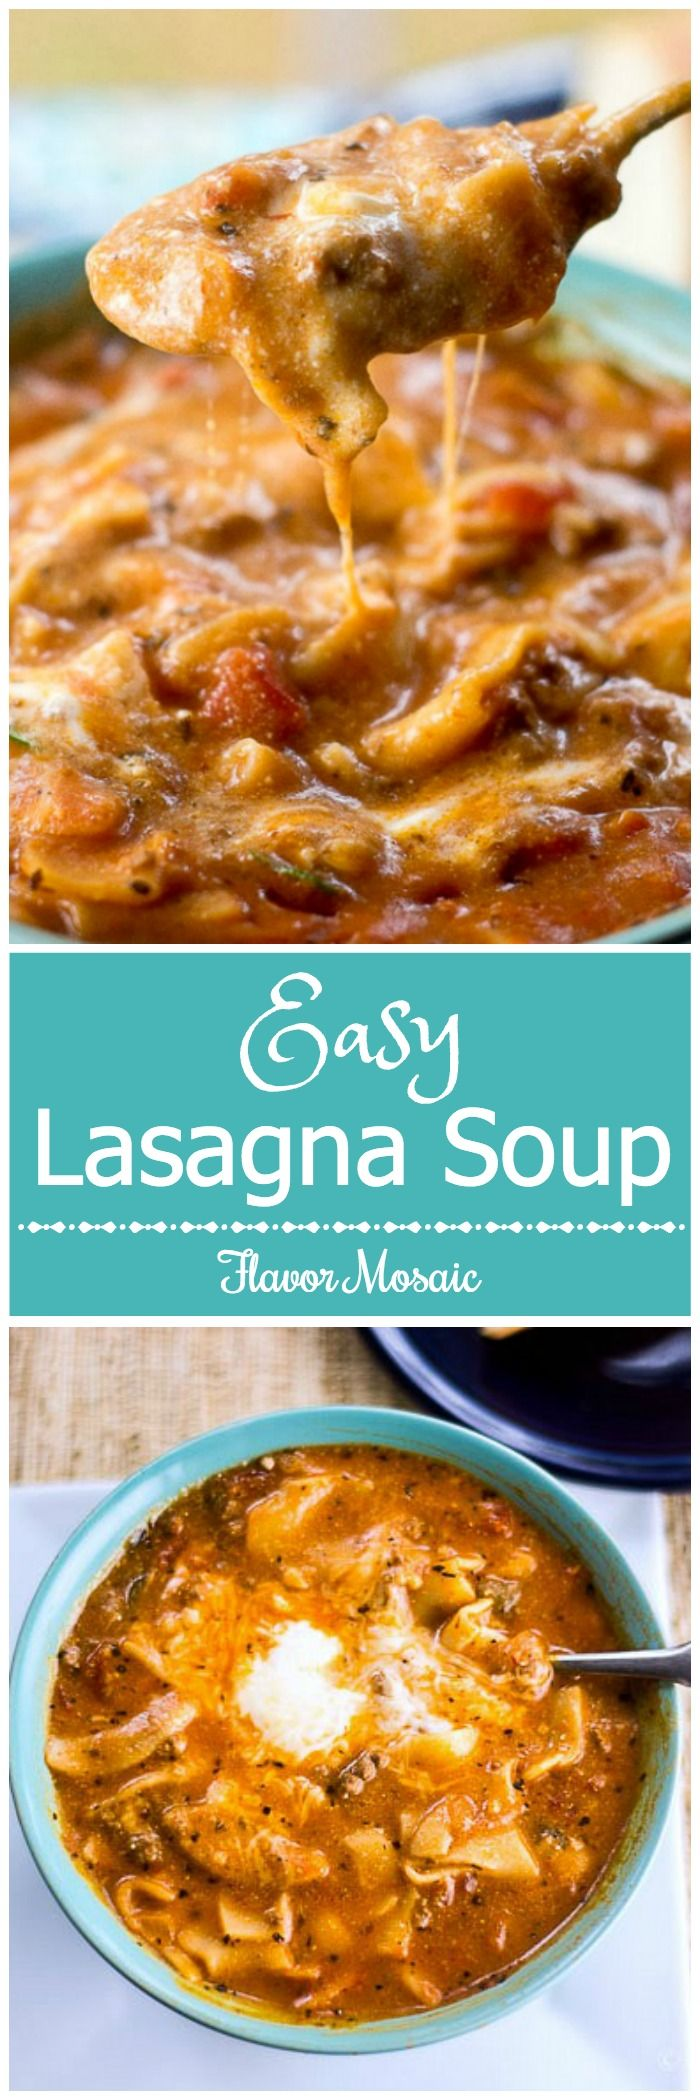 Easy Lasagna Soup Recipe via @flavormosaic - food Italian ideas dinner